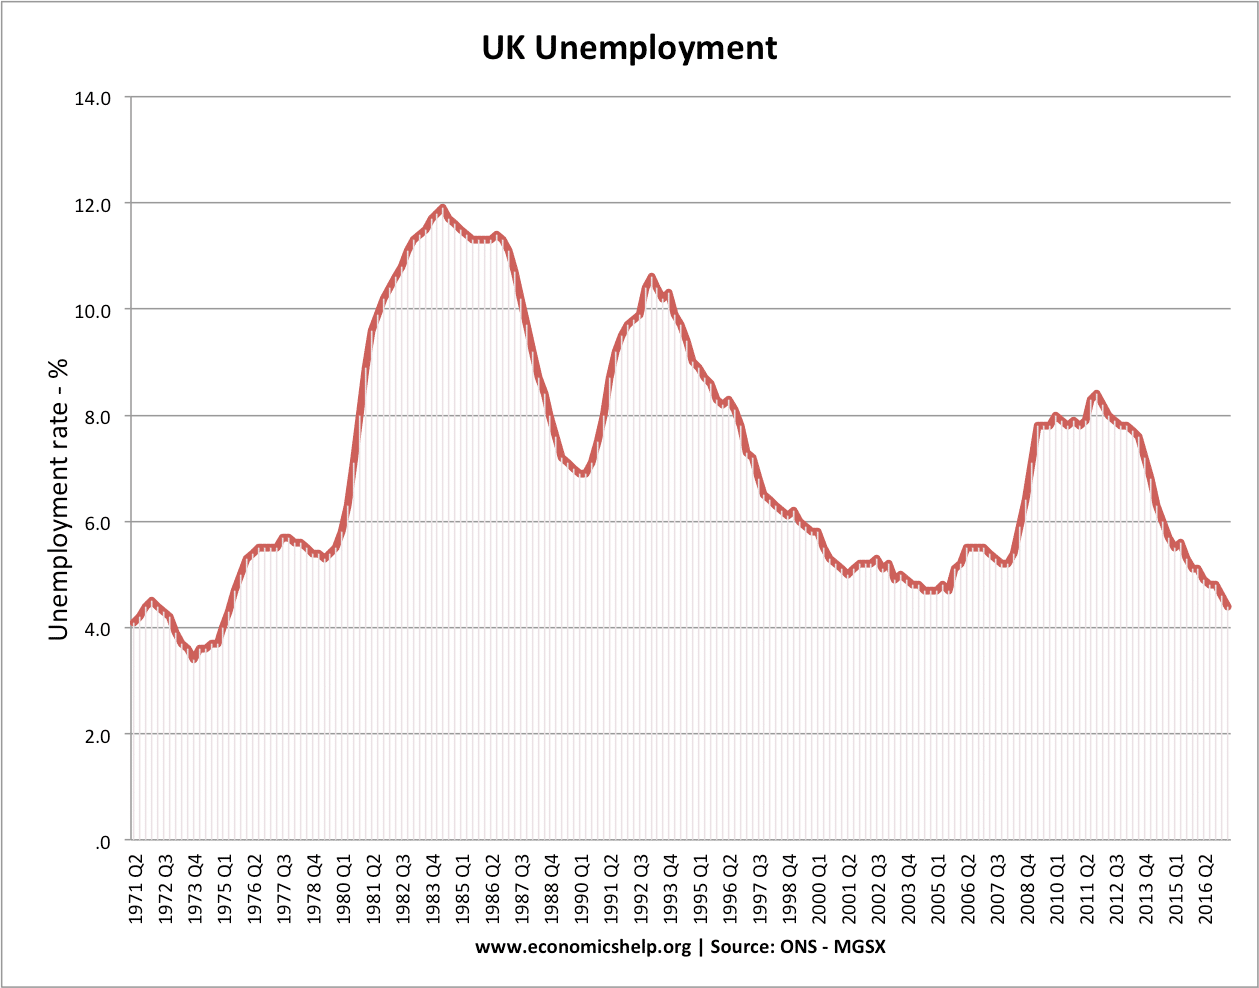 UK Unemployment in 2007 lowest for 22 years